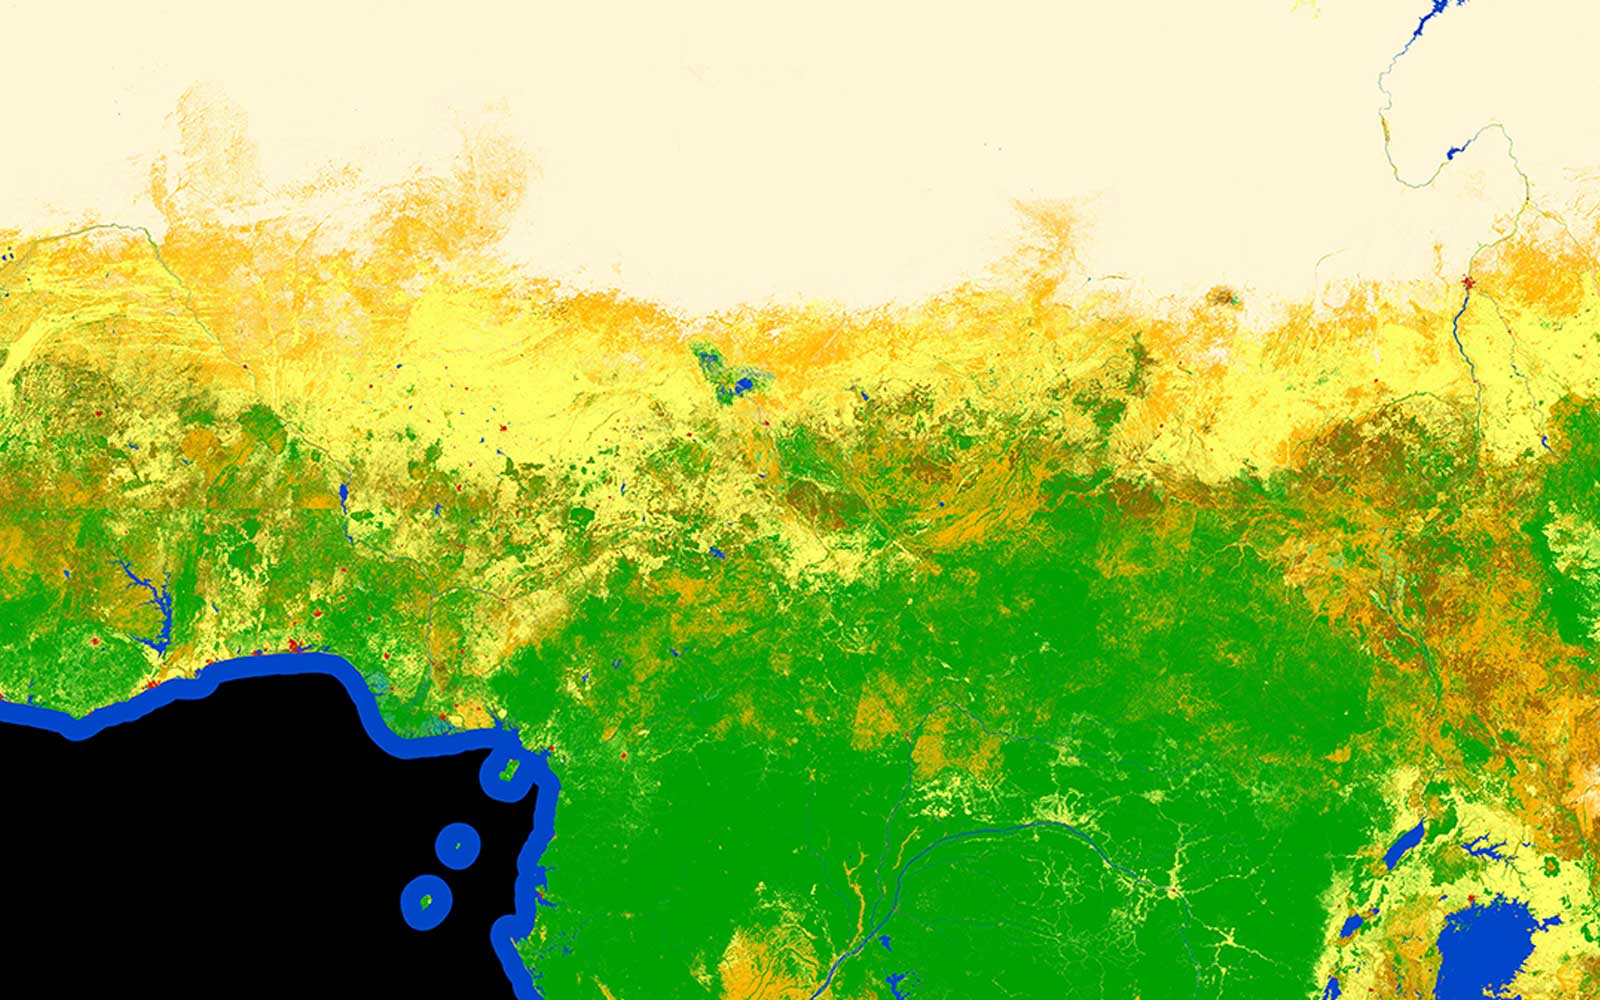 This Is the First High-resolution Land Cover Map of All of Africa